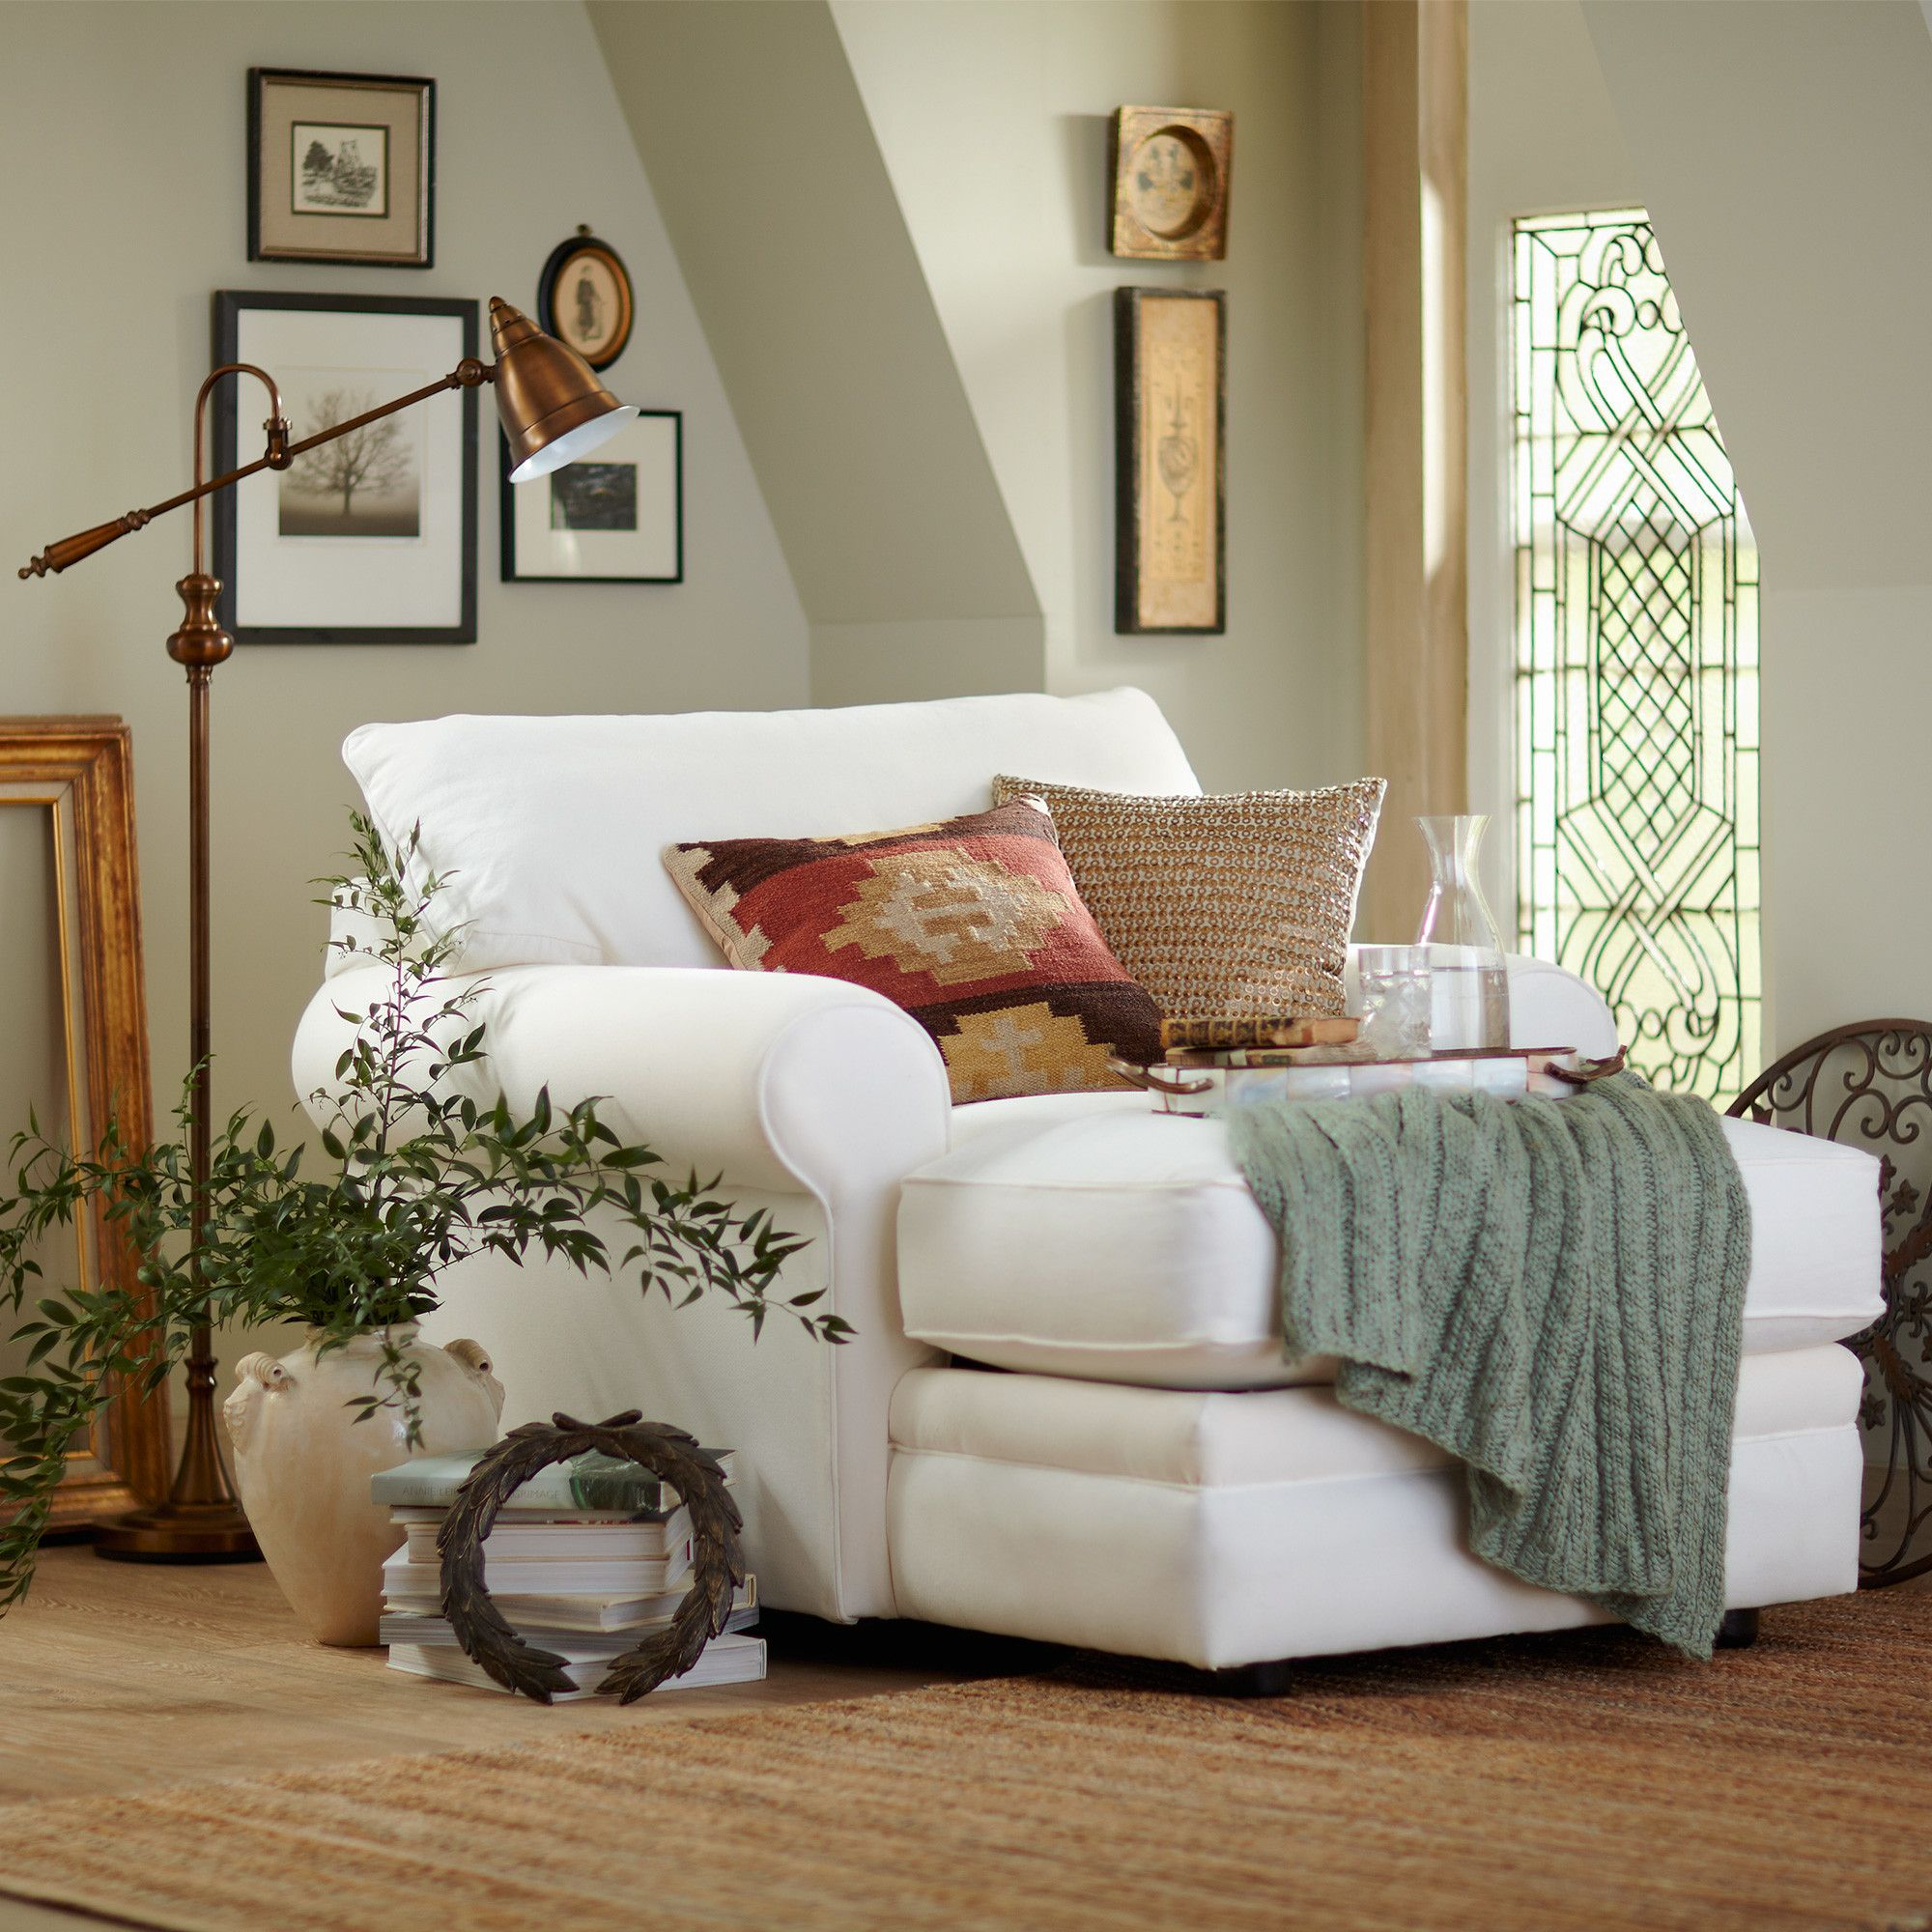 Bedroom Chaise Lounge Chair Newton Chaise Nooks Comfy Reading Chair And Birch Lane